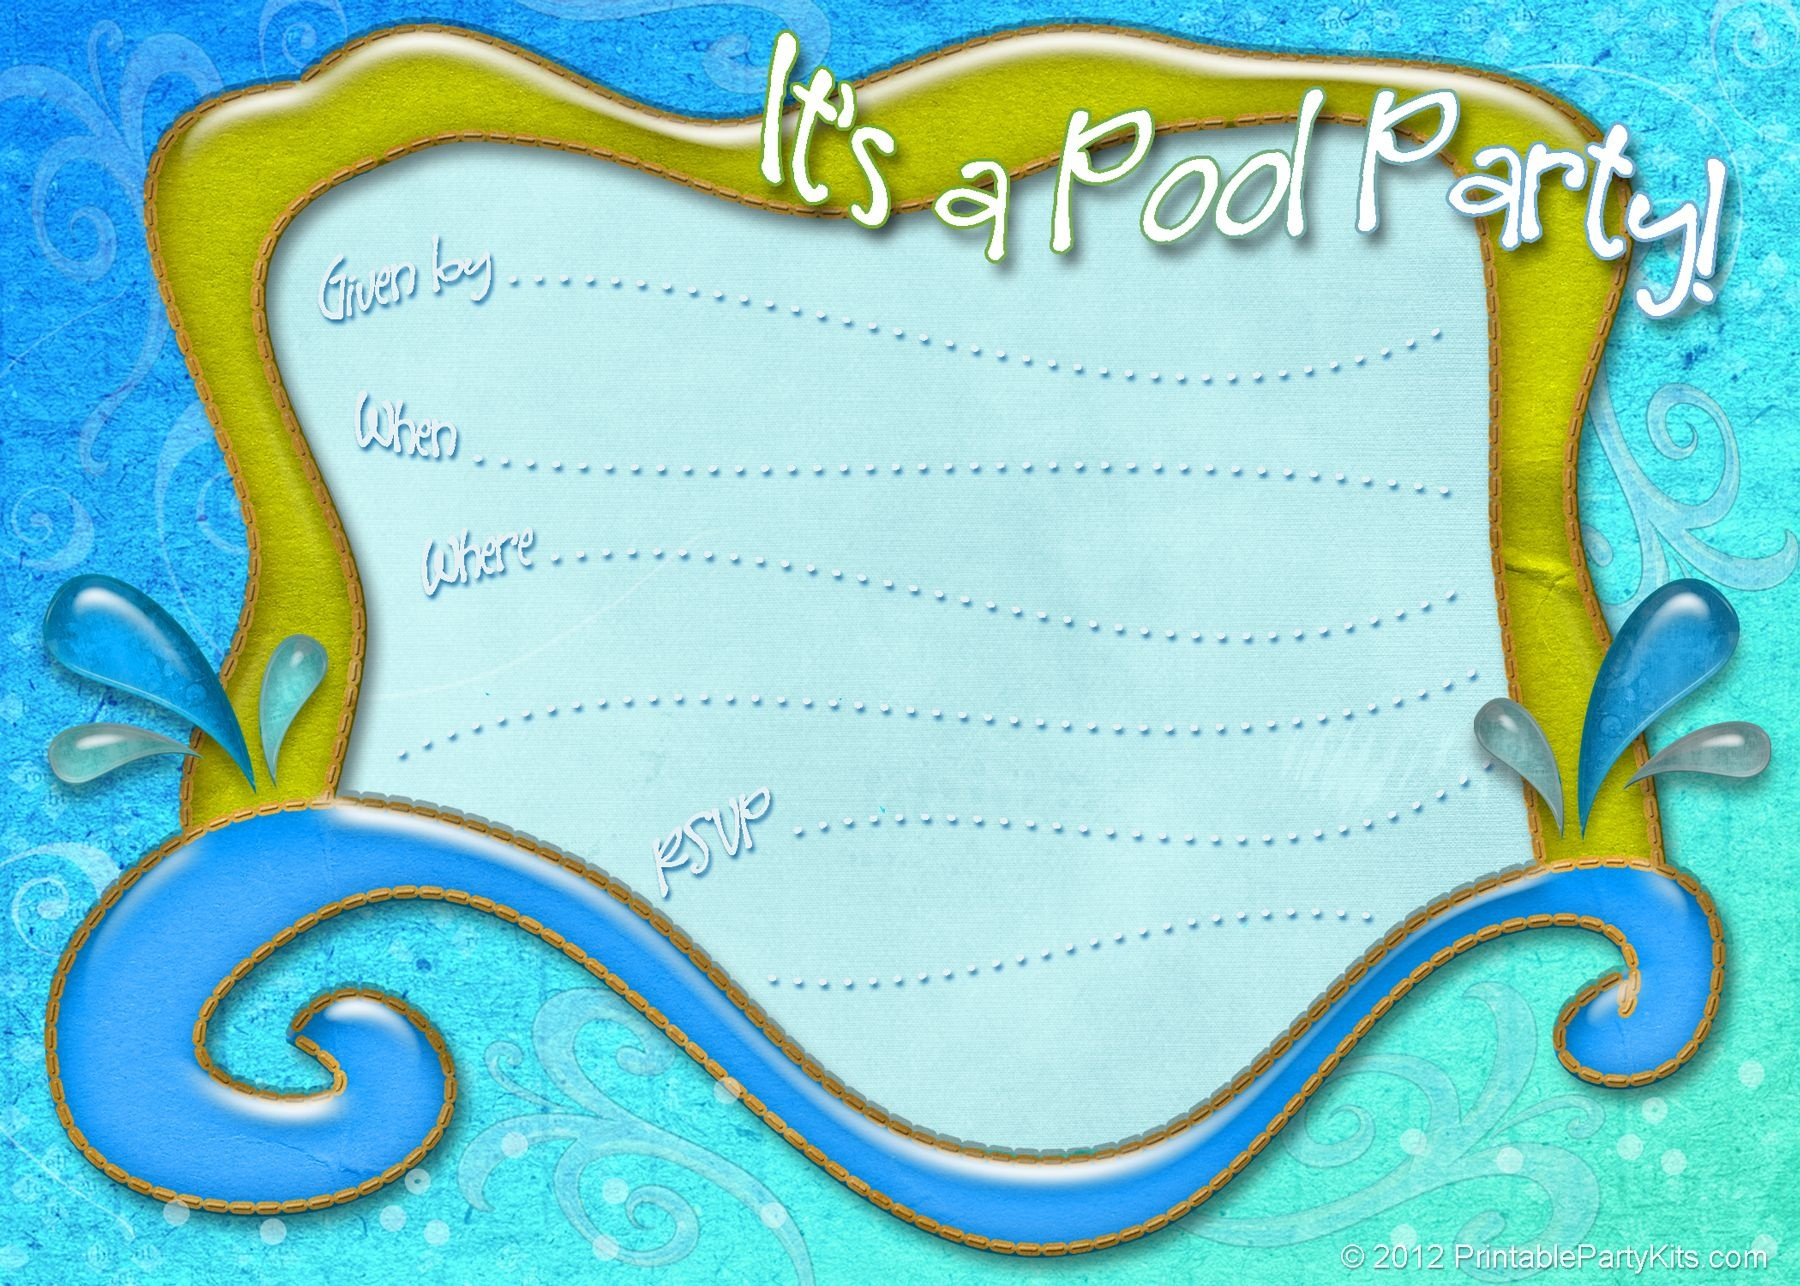 Free Printable Pool Party Invitation Template From - Free Printable Pool Party Invitation Cards